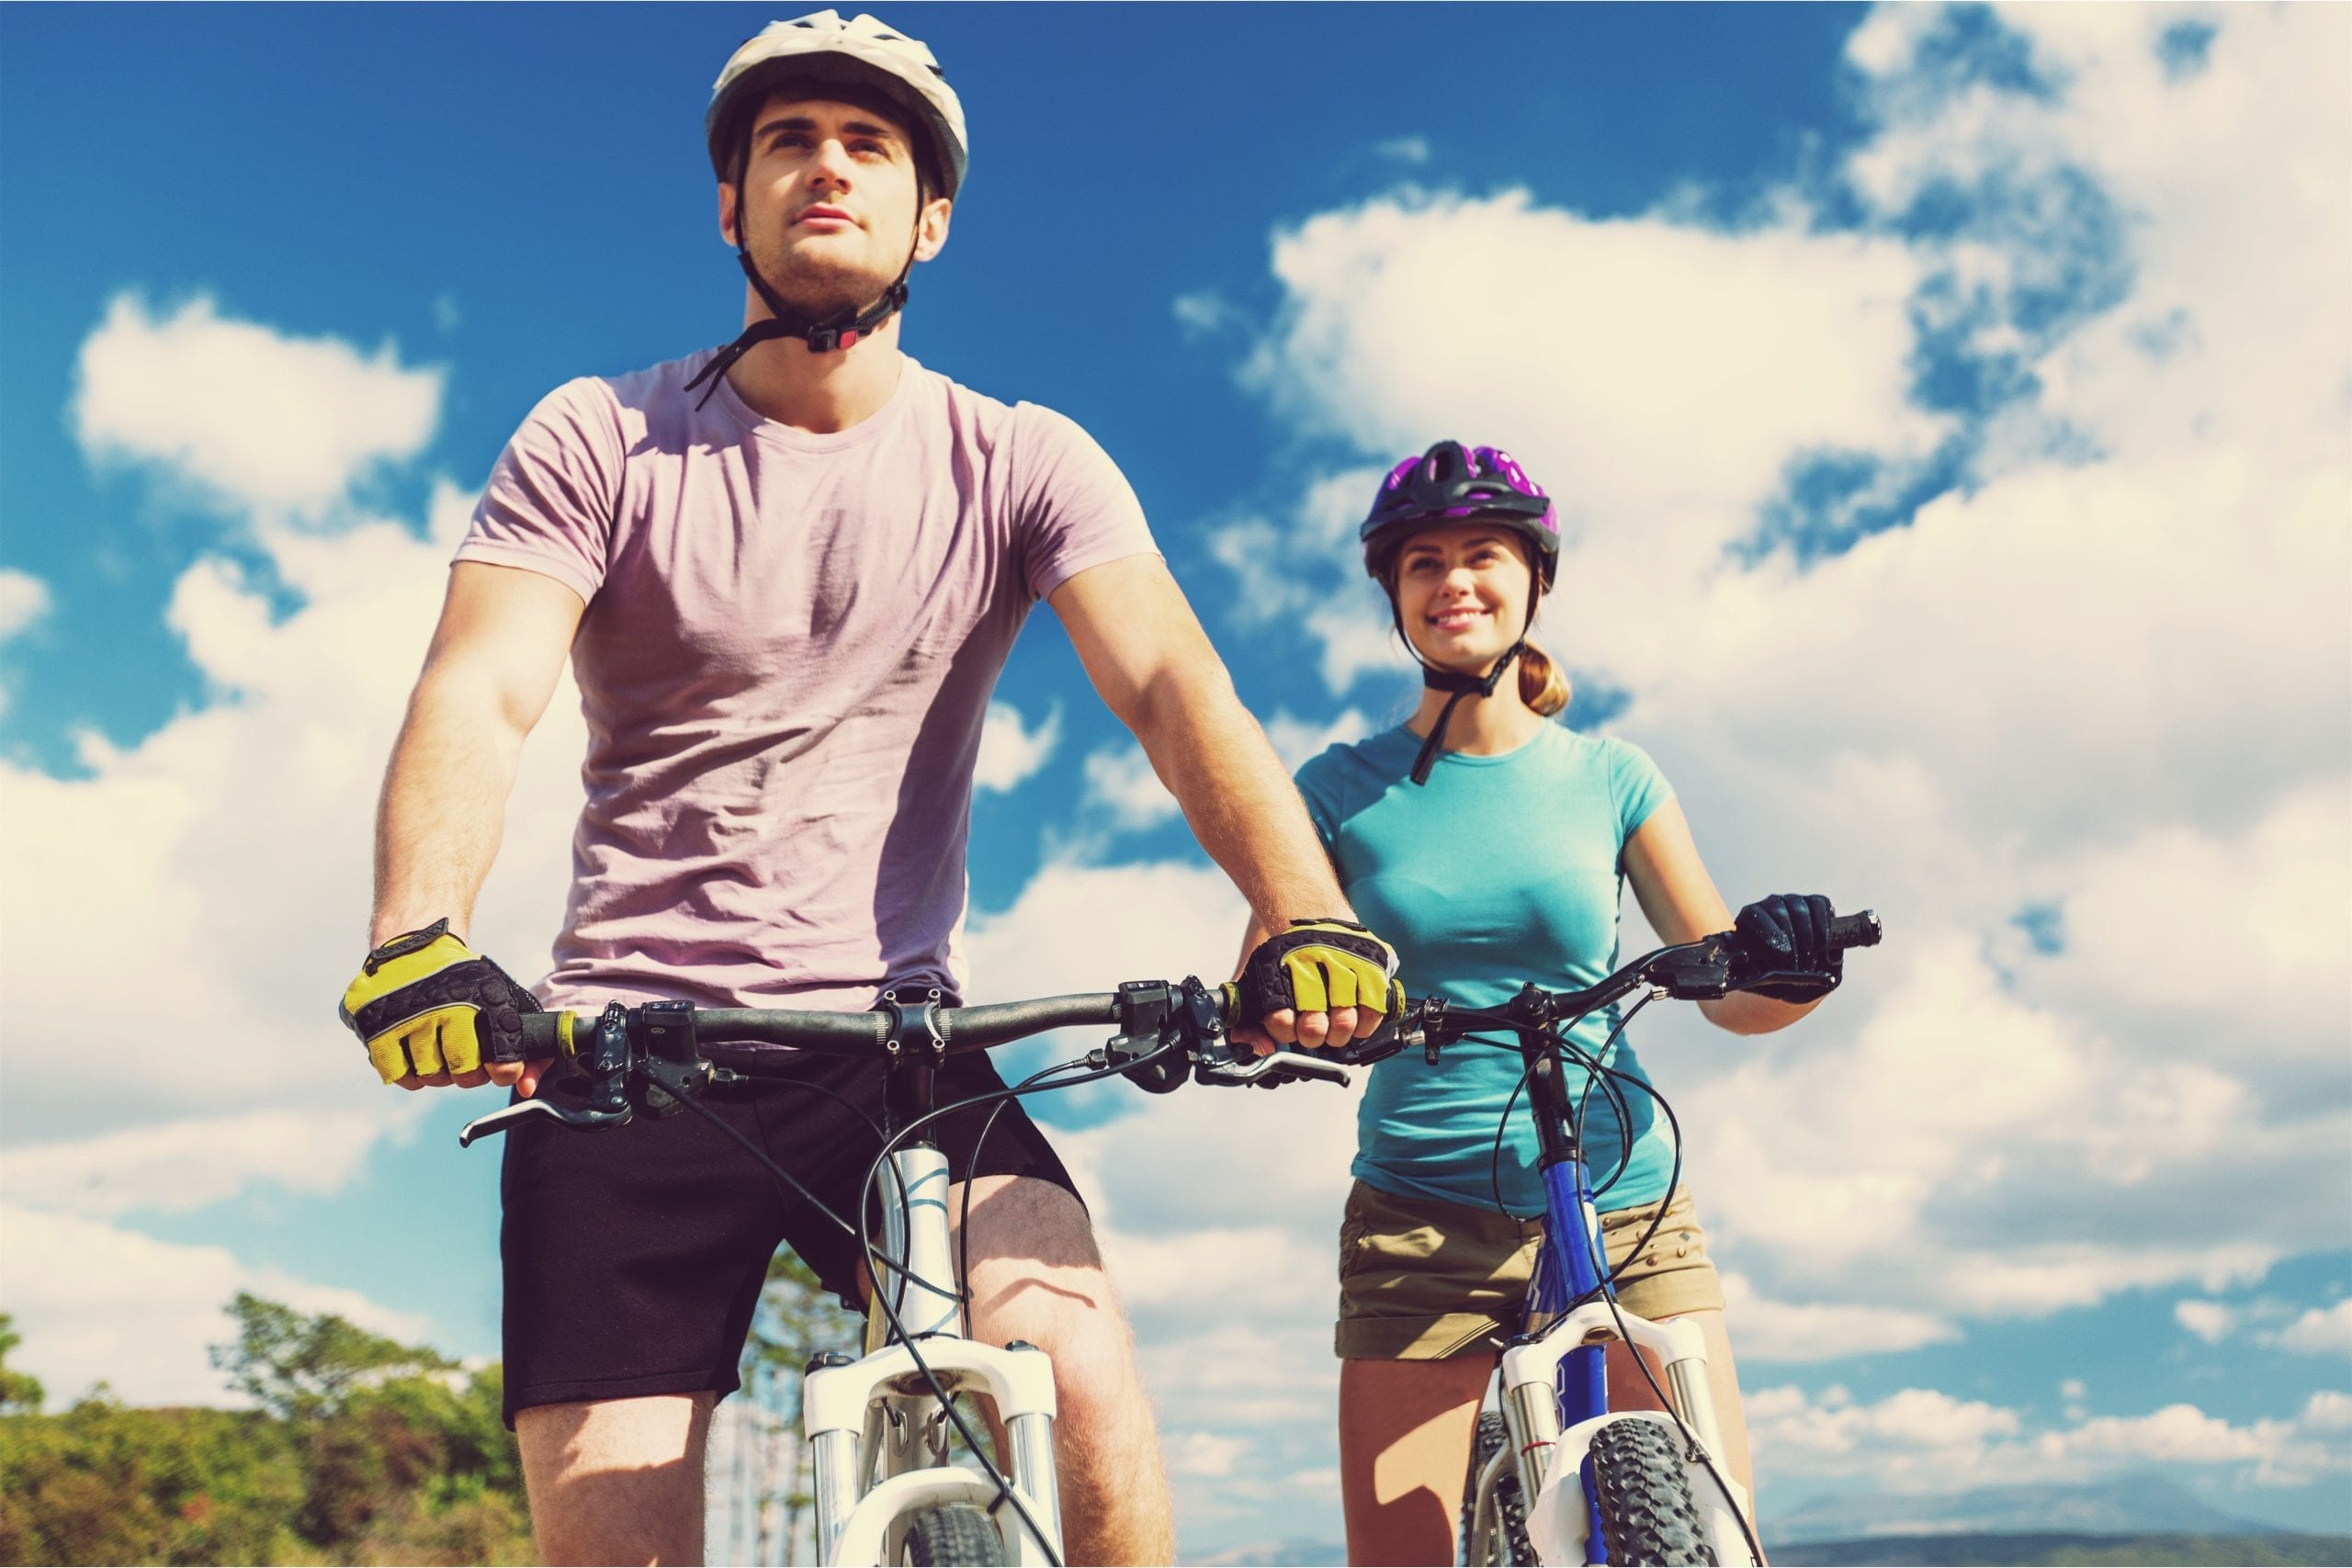 Los Angeles Bicycle Accident Lawyer and Cyclist Accident Attorney